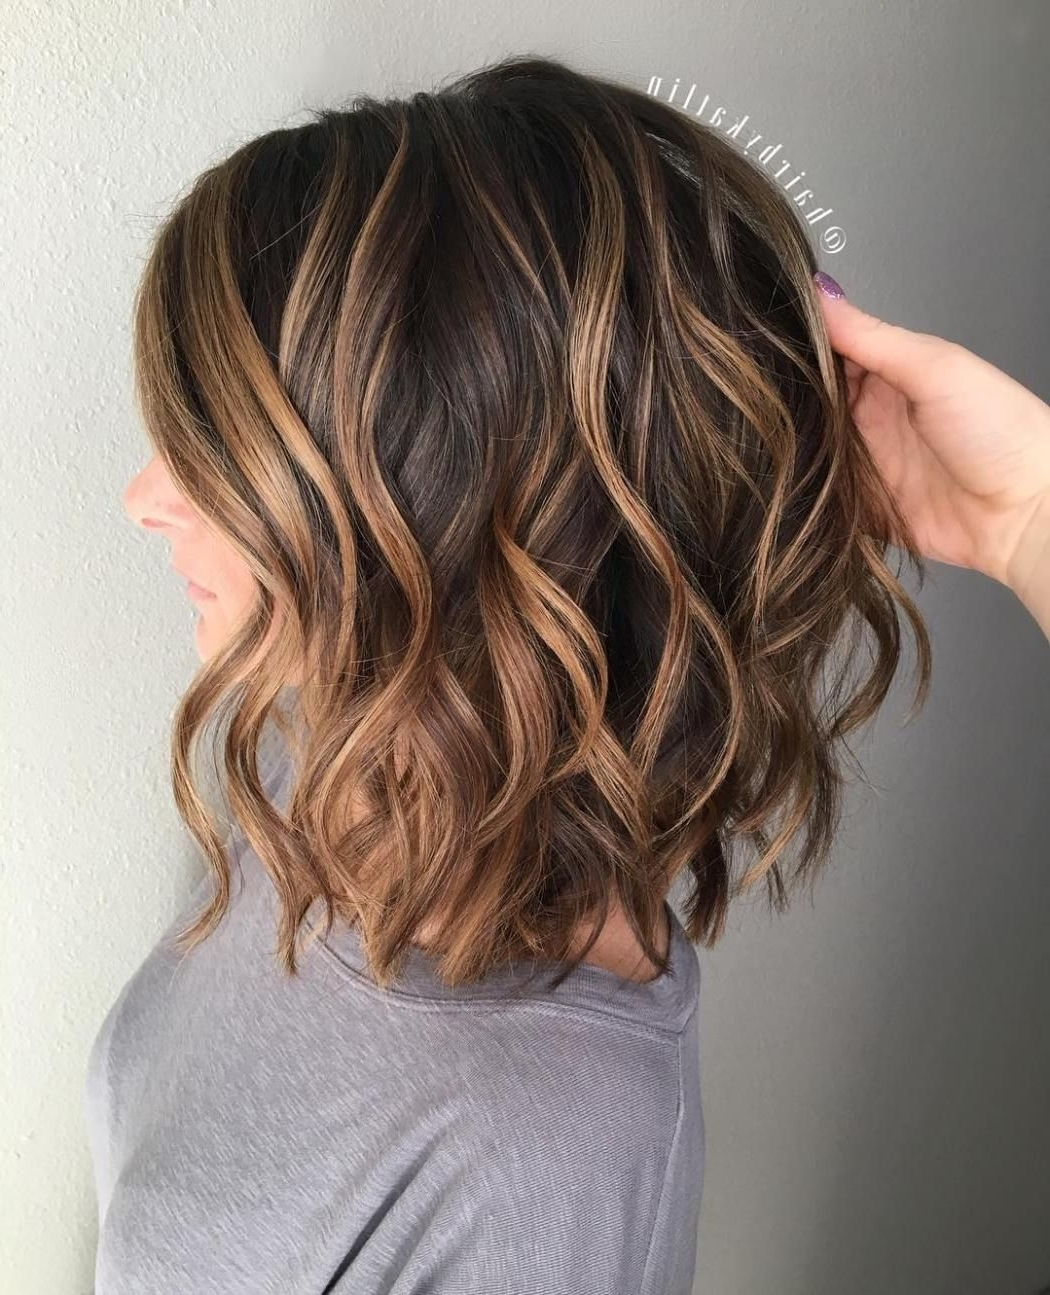 Image Result For Caramel Highlights On Dark Brown Curly Hair Highlighted Medium Length Hairstyles